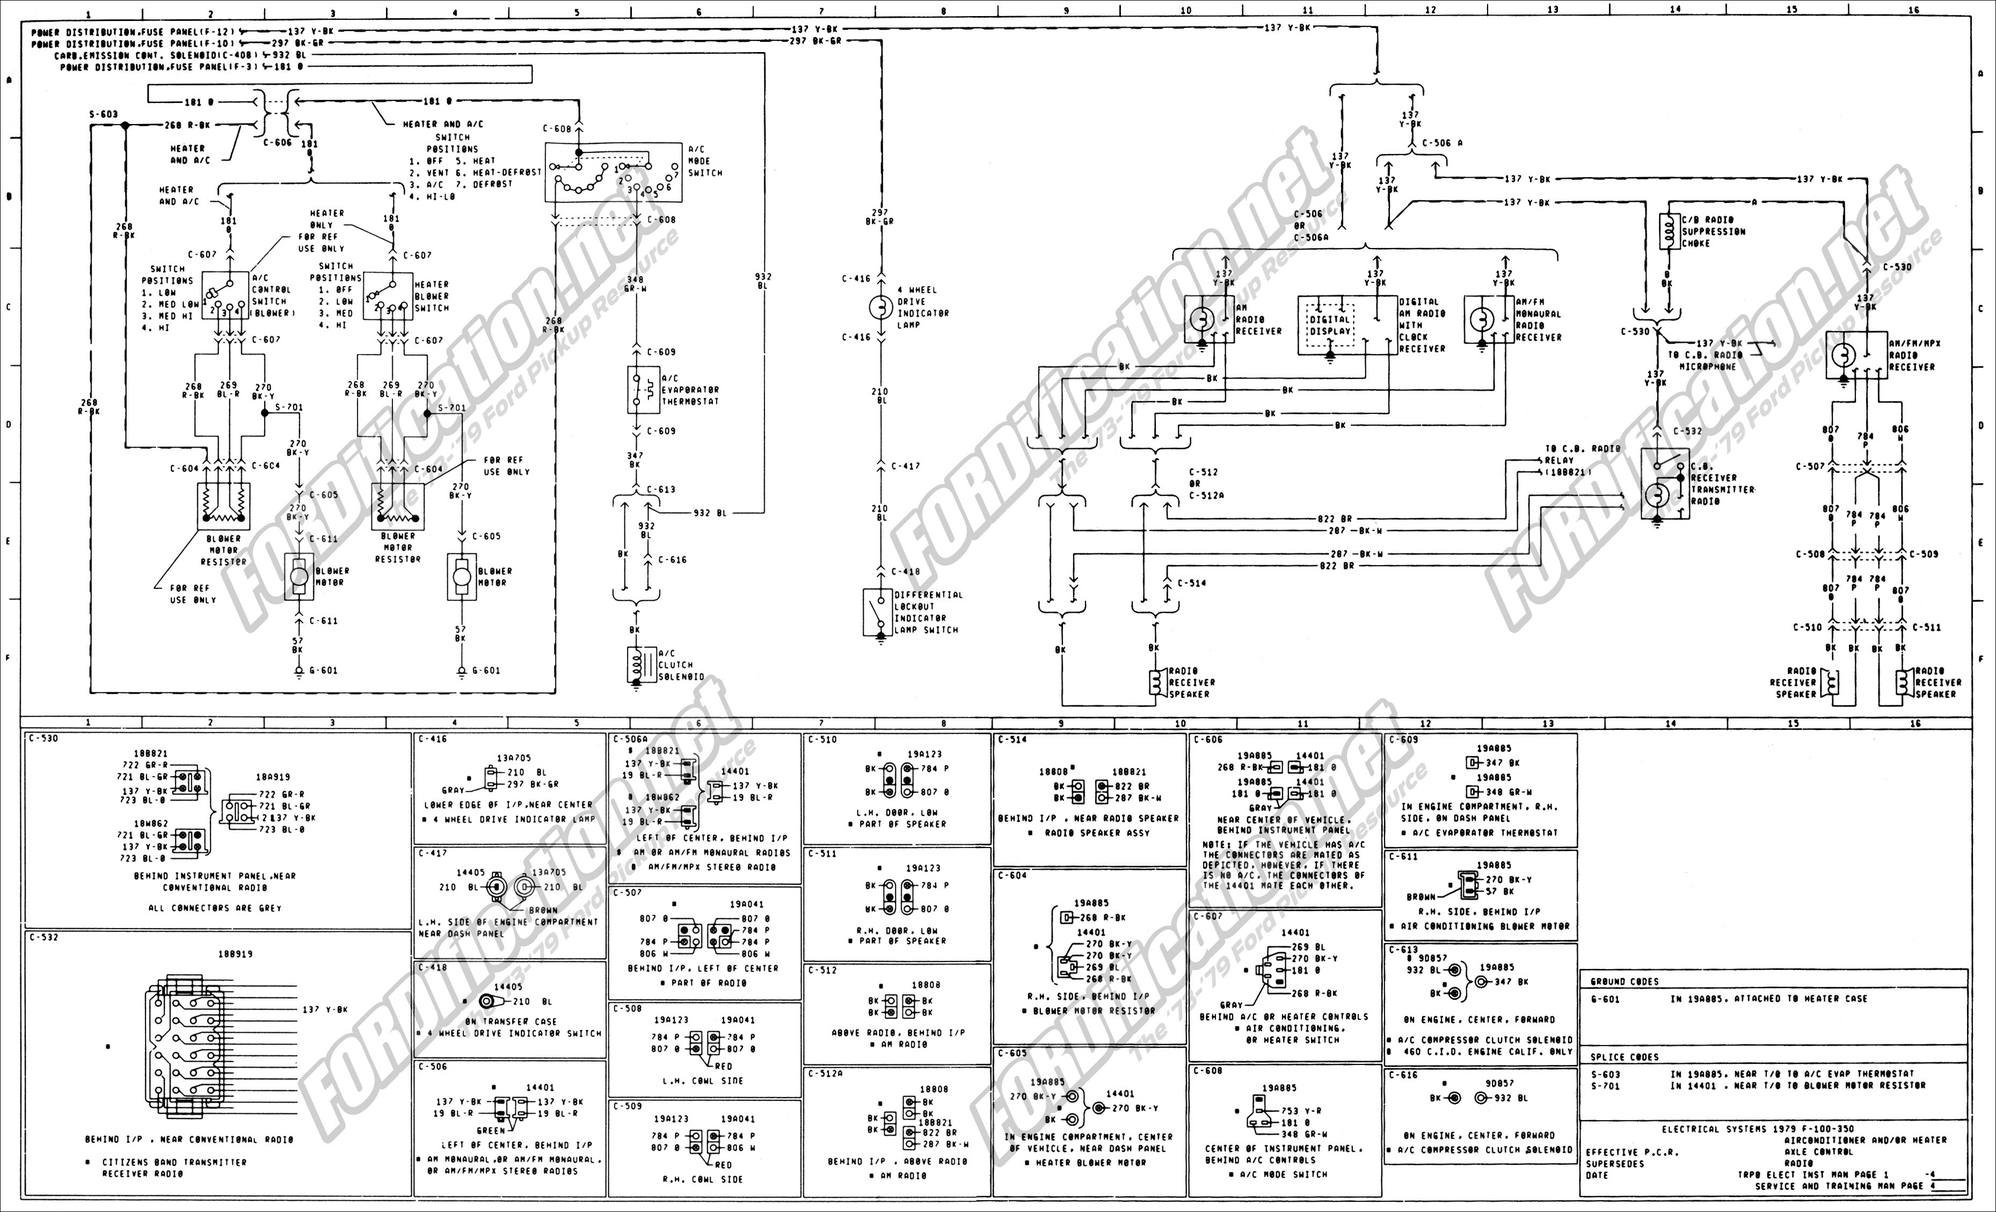 DIAGRAM] 2011 F350 Ac Wiring Diagram FULL Version HD Quality Wiring Diagram  - DIAGRAMIST.ANDREAROSSATO.IT | Ford F 350 Air Conditioner Wire Diagrams |  | Diagram Database